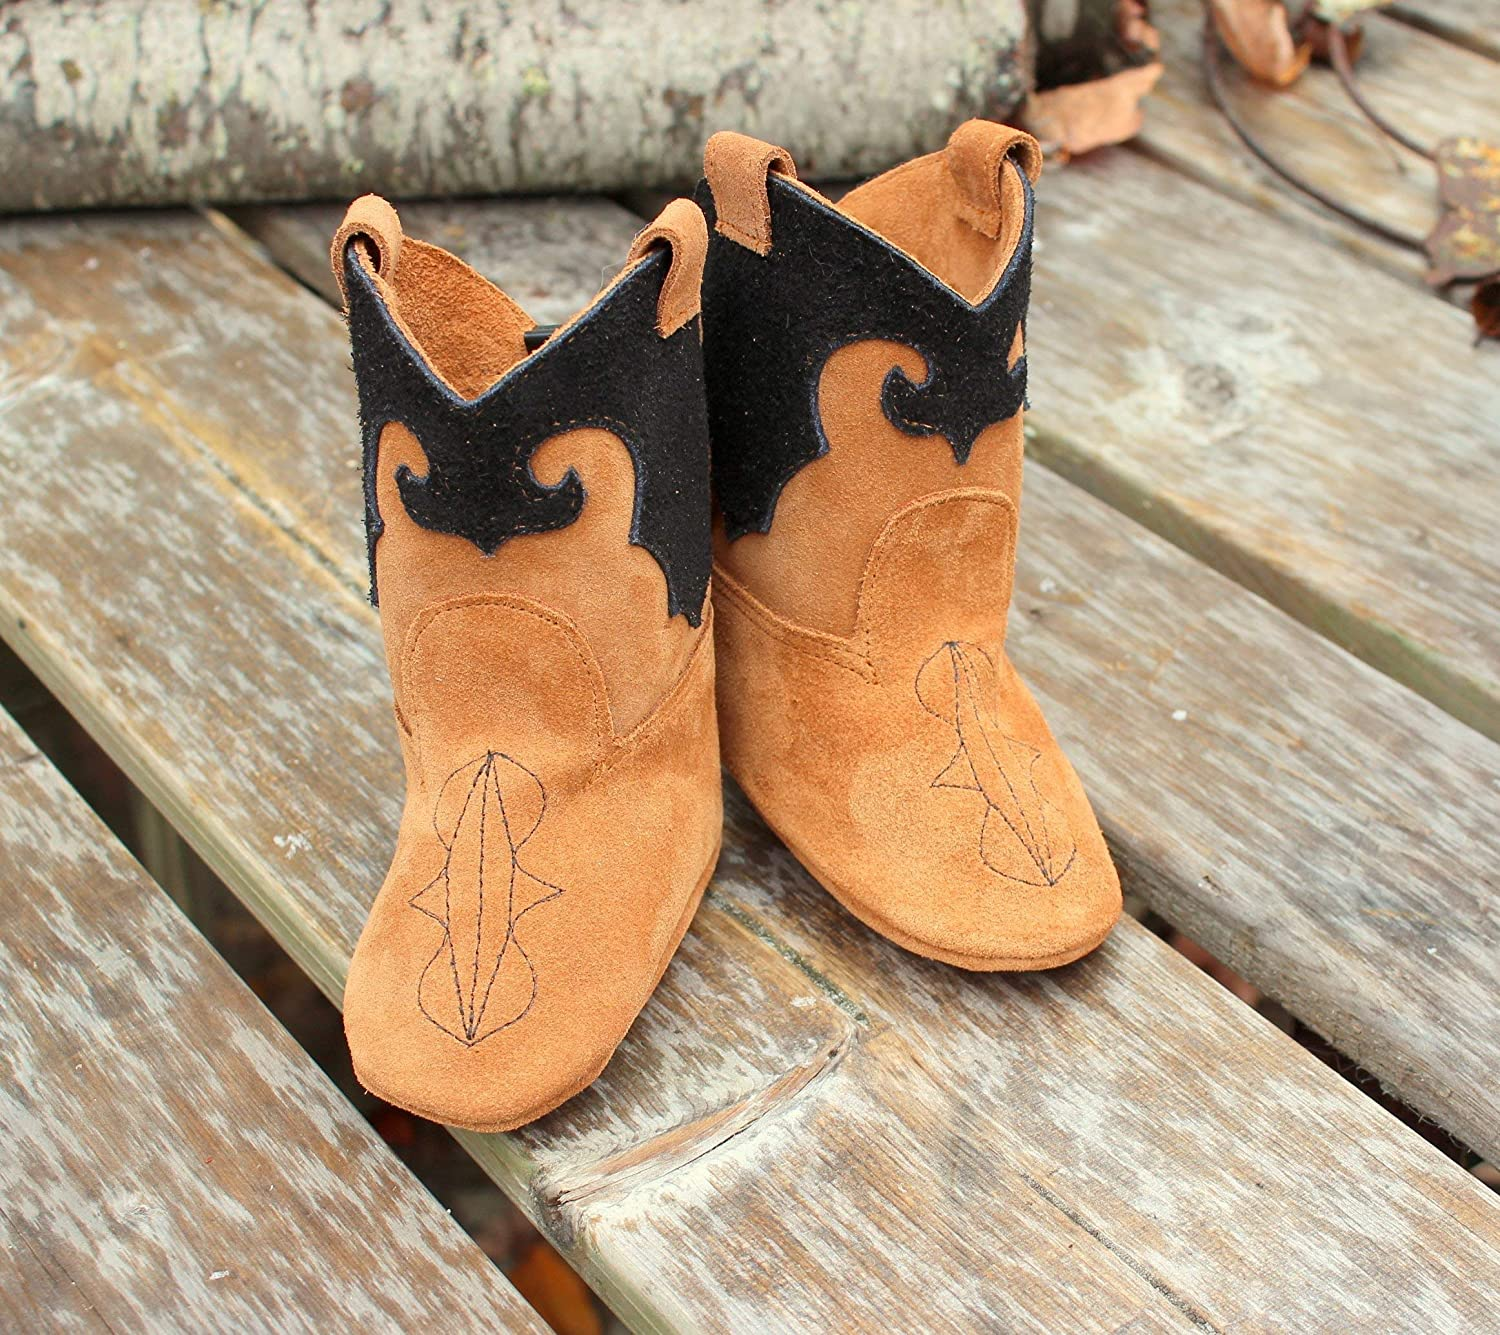 Leather Western Baby Cowboy Boots: Handmade